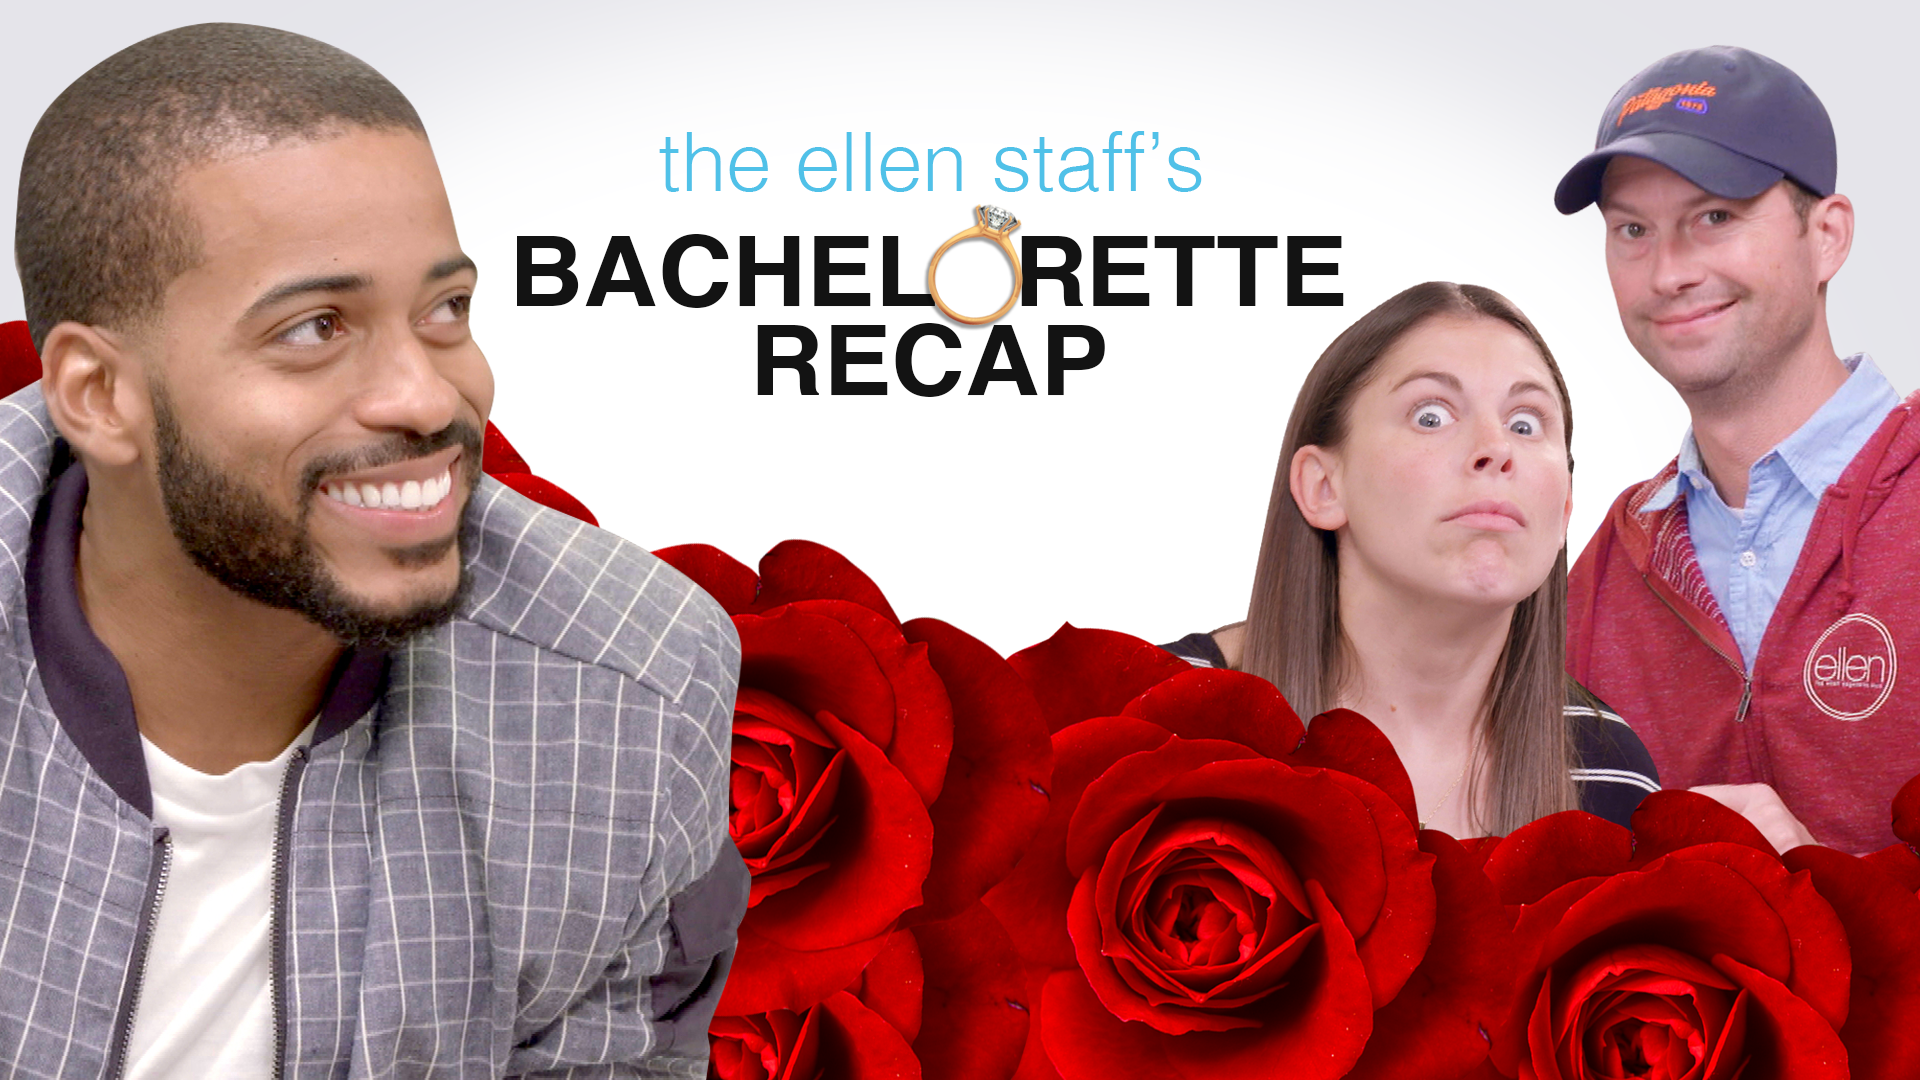 If you watched the finale of #TheBachelorette, you have to watch this. Really. https://t.co/NgsOdt8Fdj